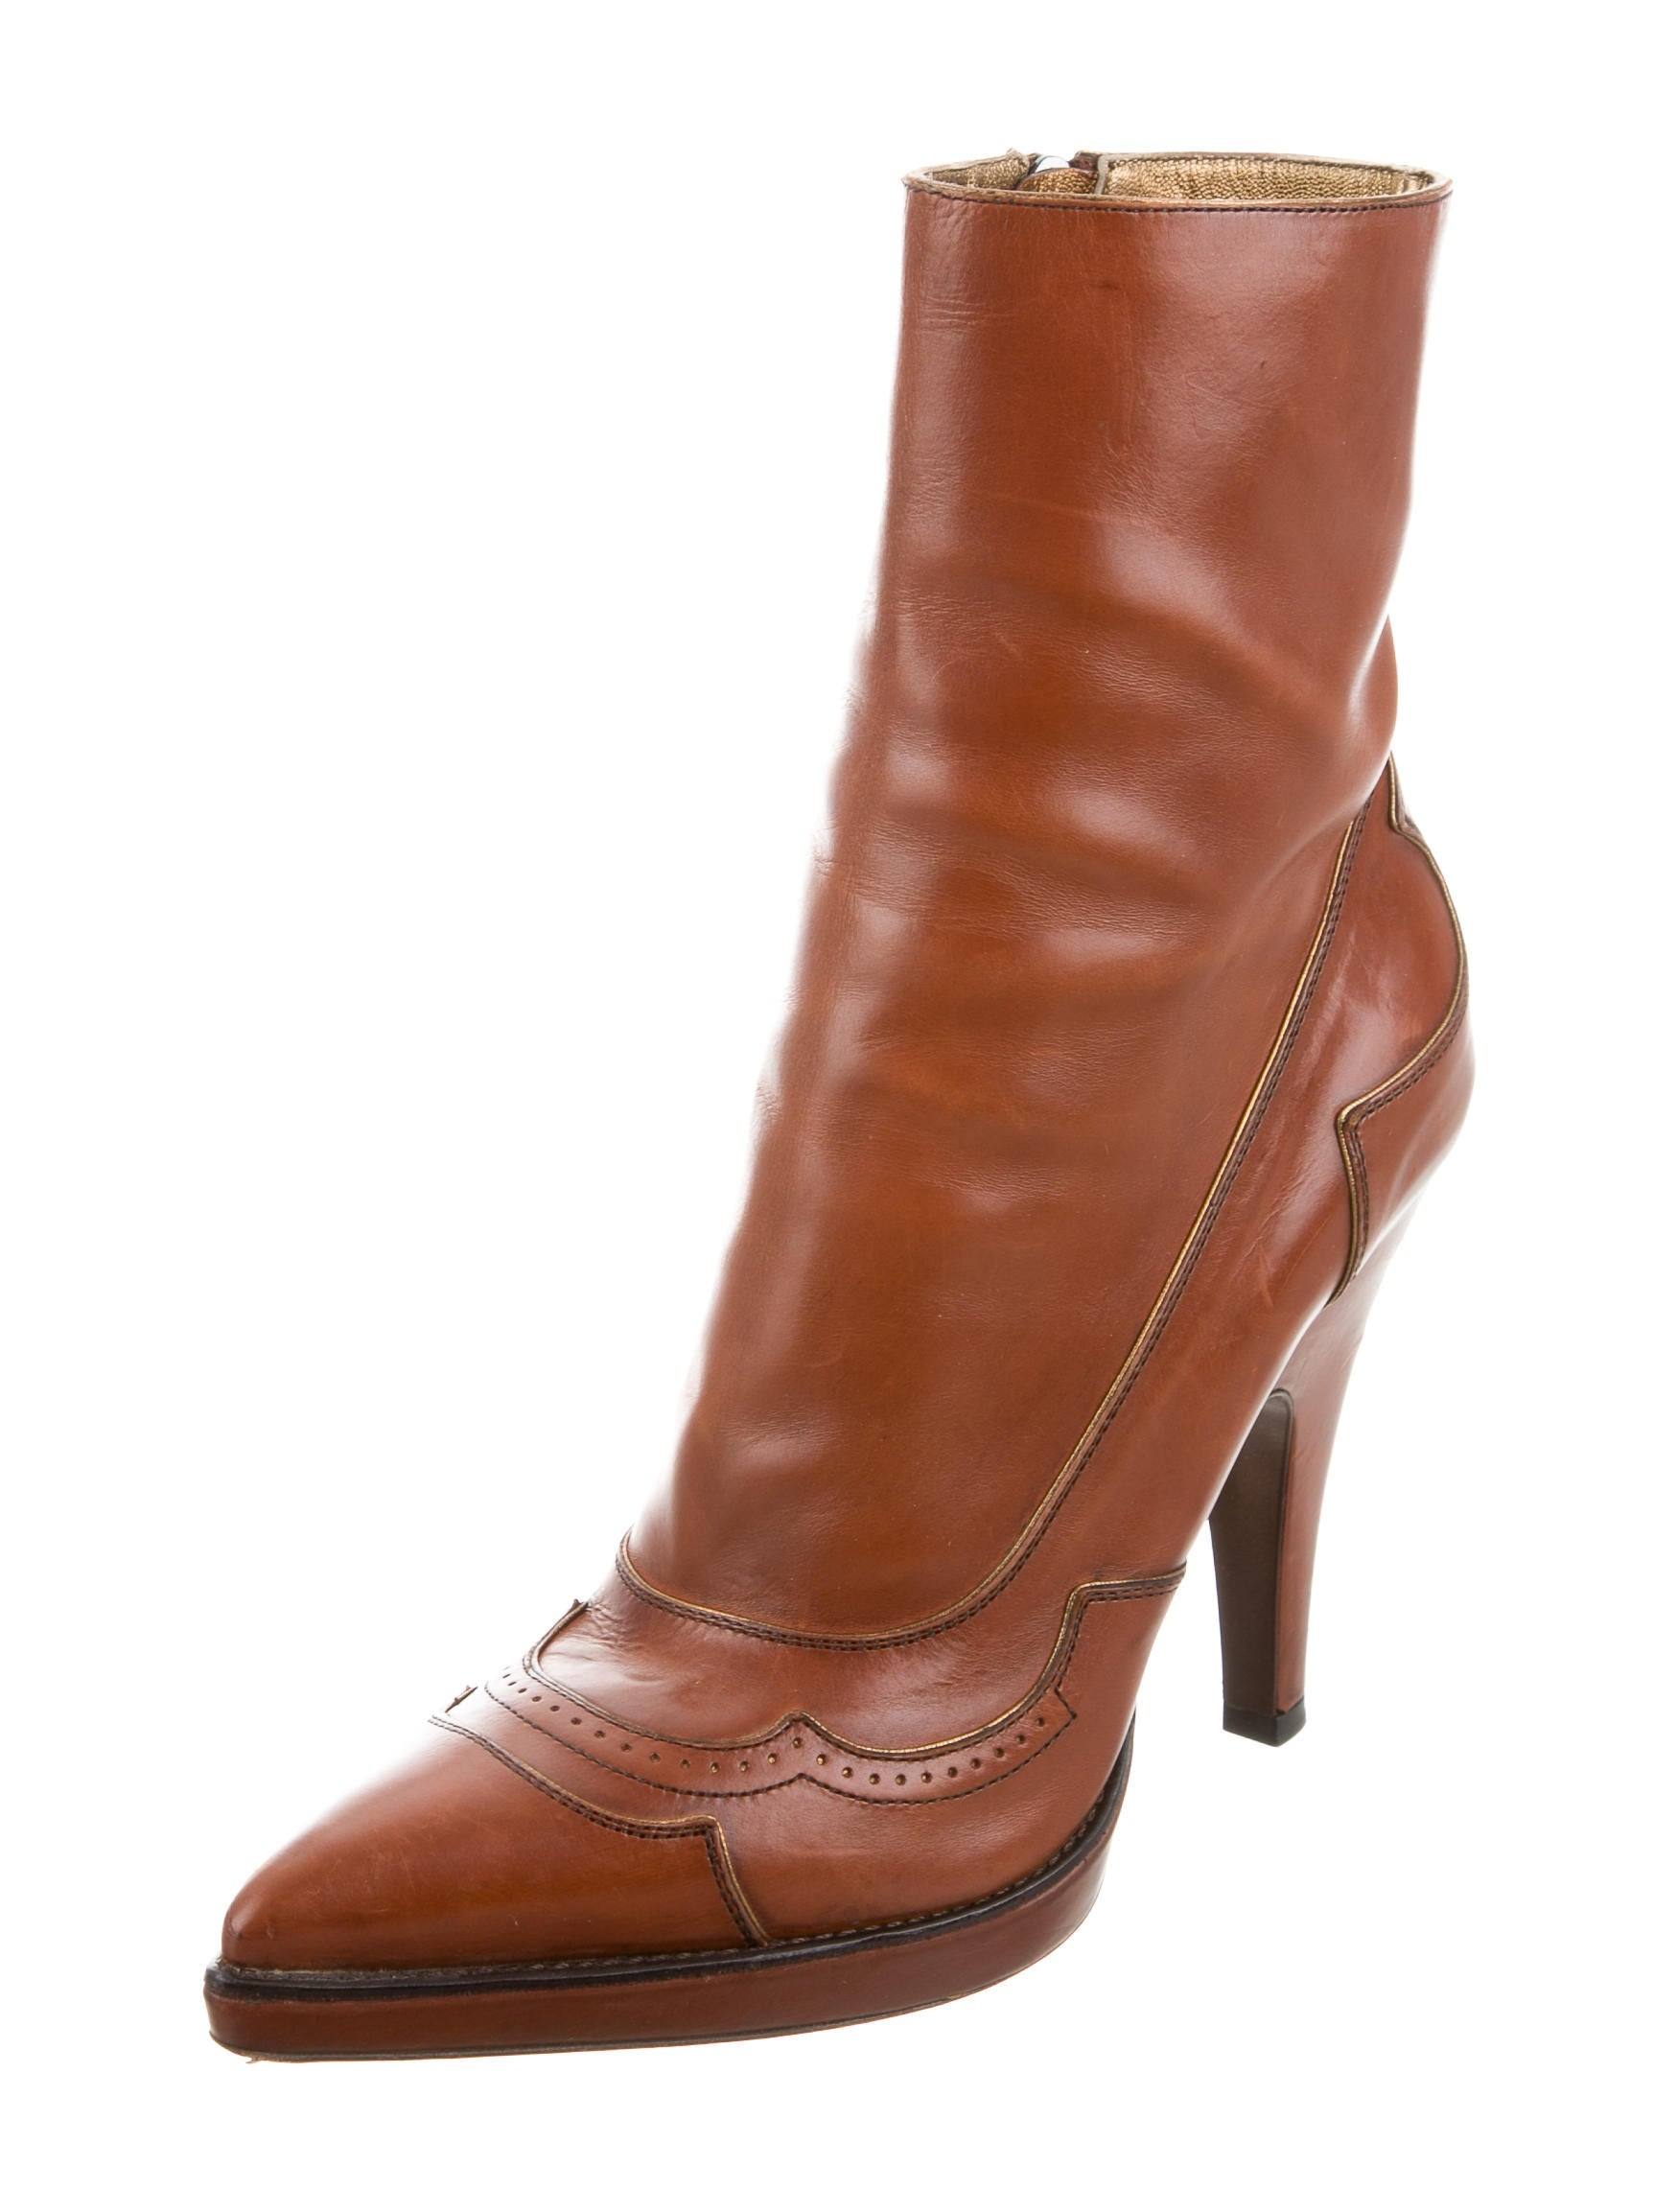 Lastest Solid Pointed Toe Side Zipper Ankle Boots - NOVASHE.com